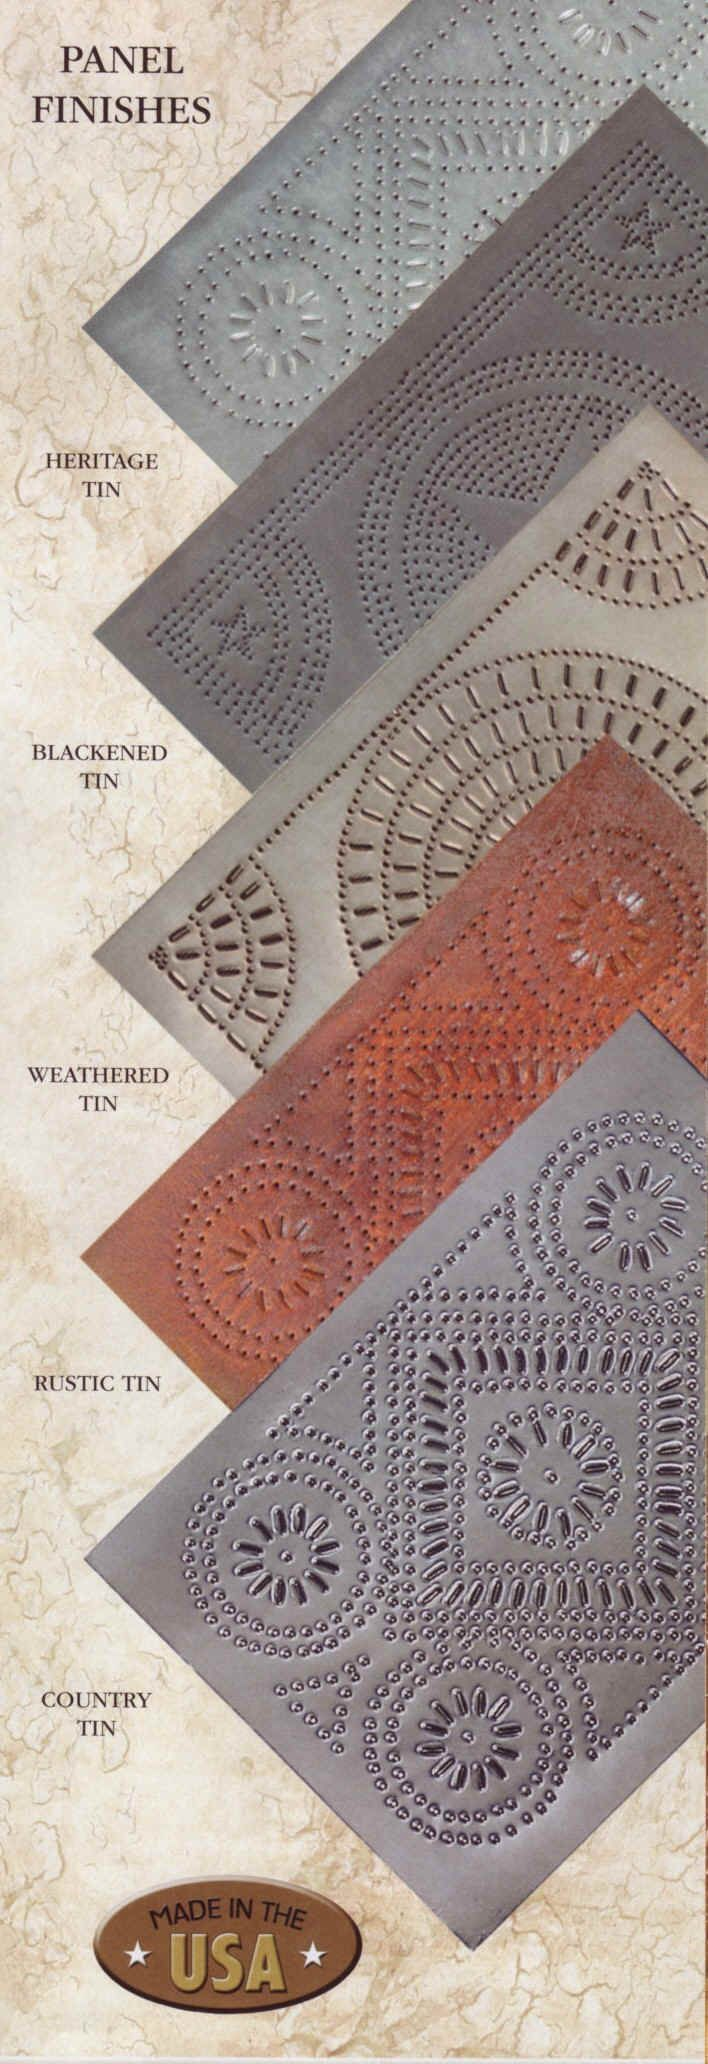 Punched tin finishes - for ceilings, backsplash or renovations. Love the heritage!!